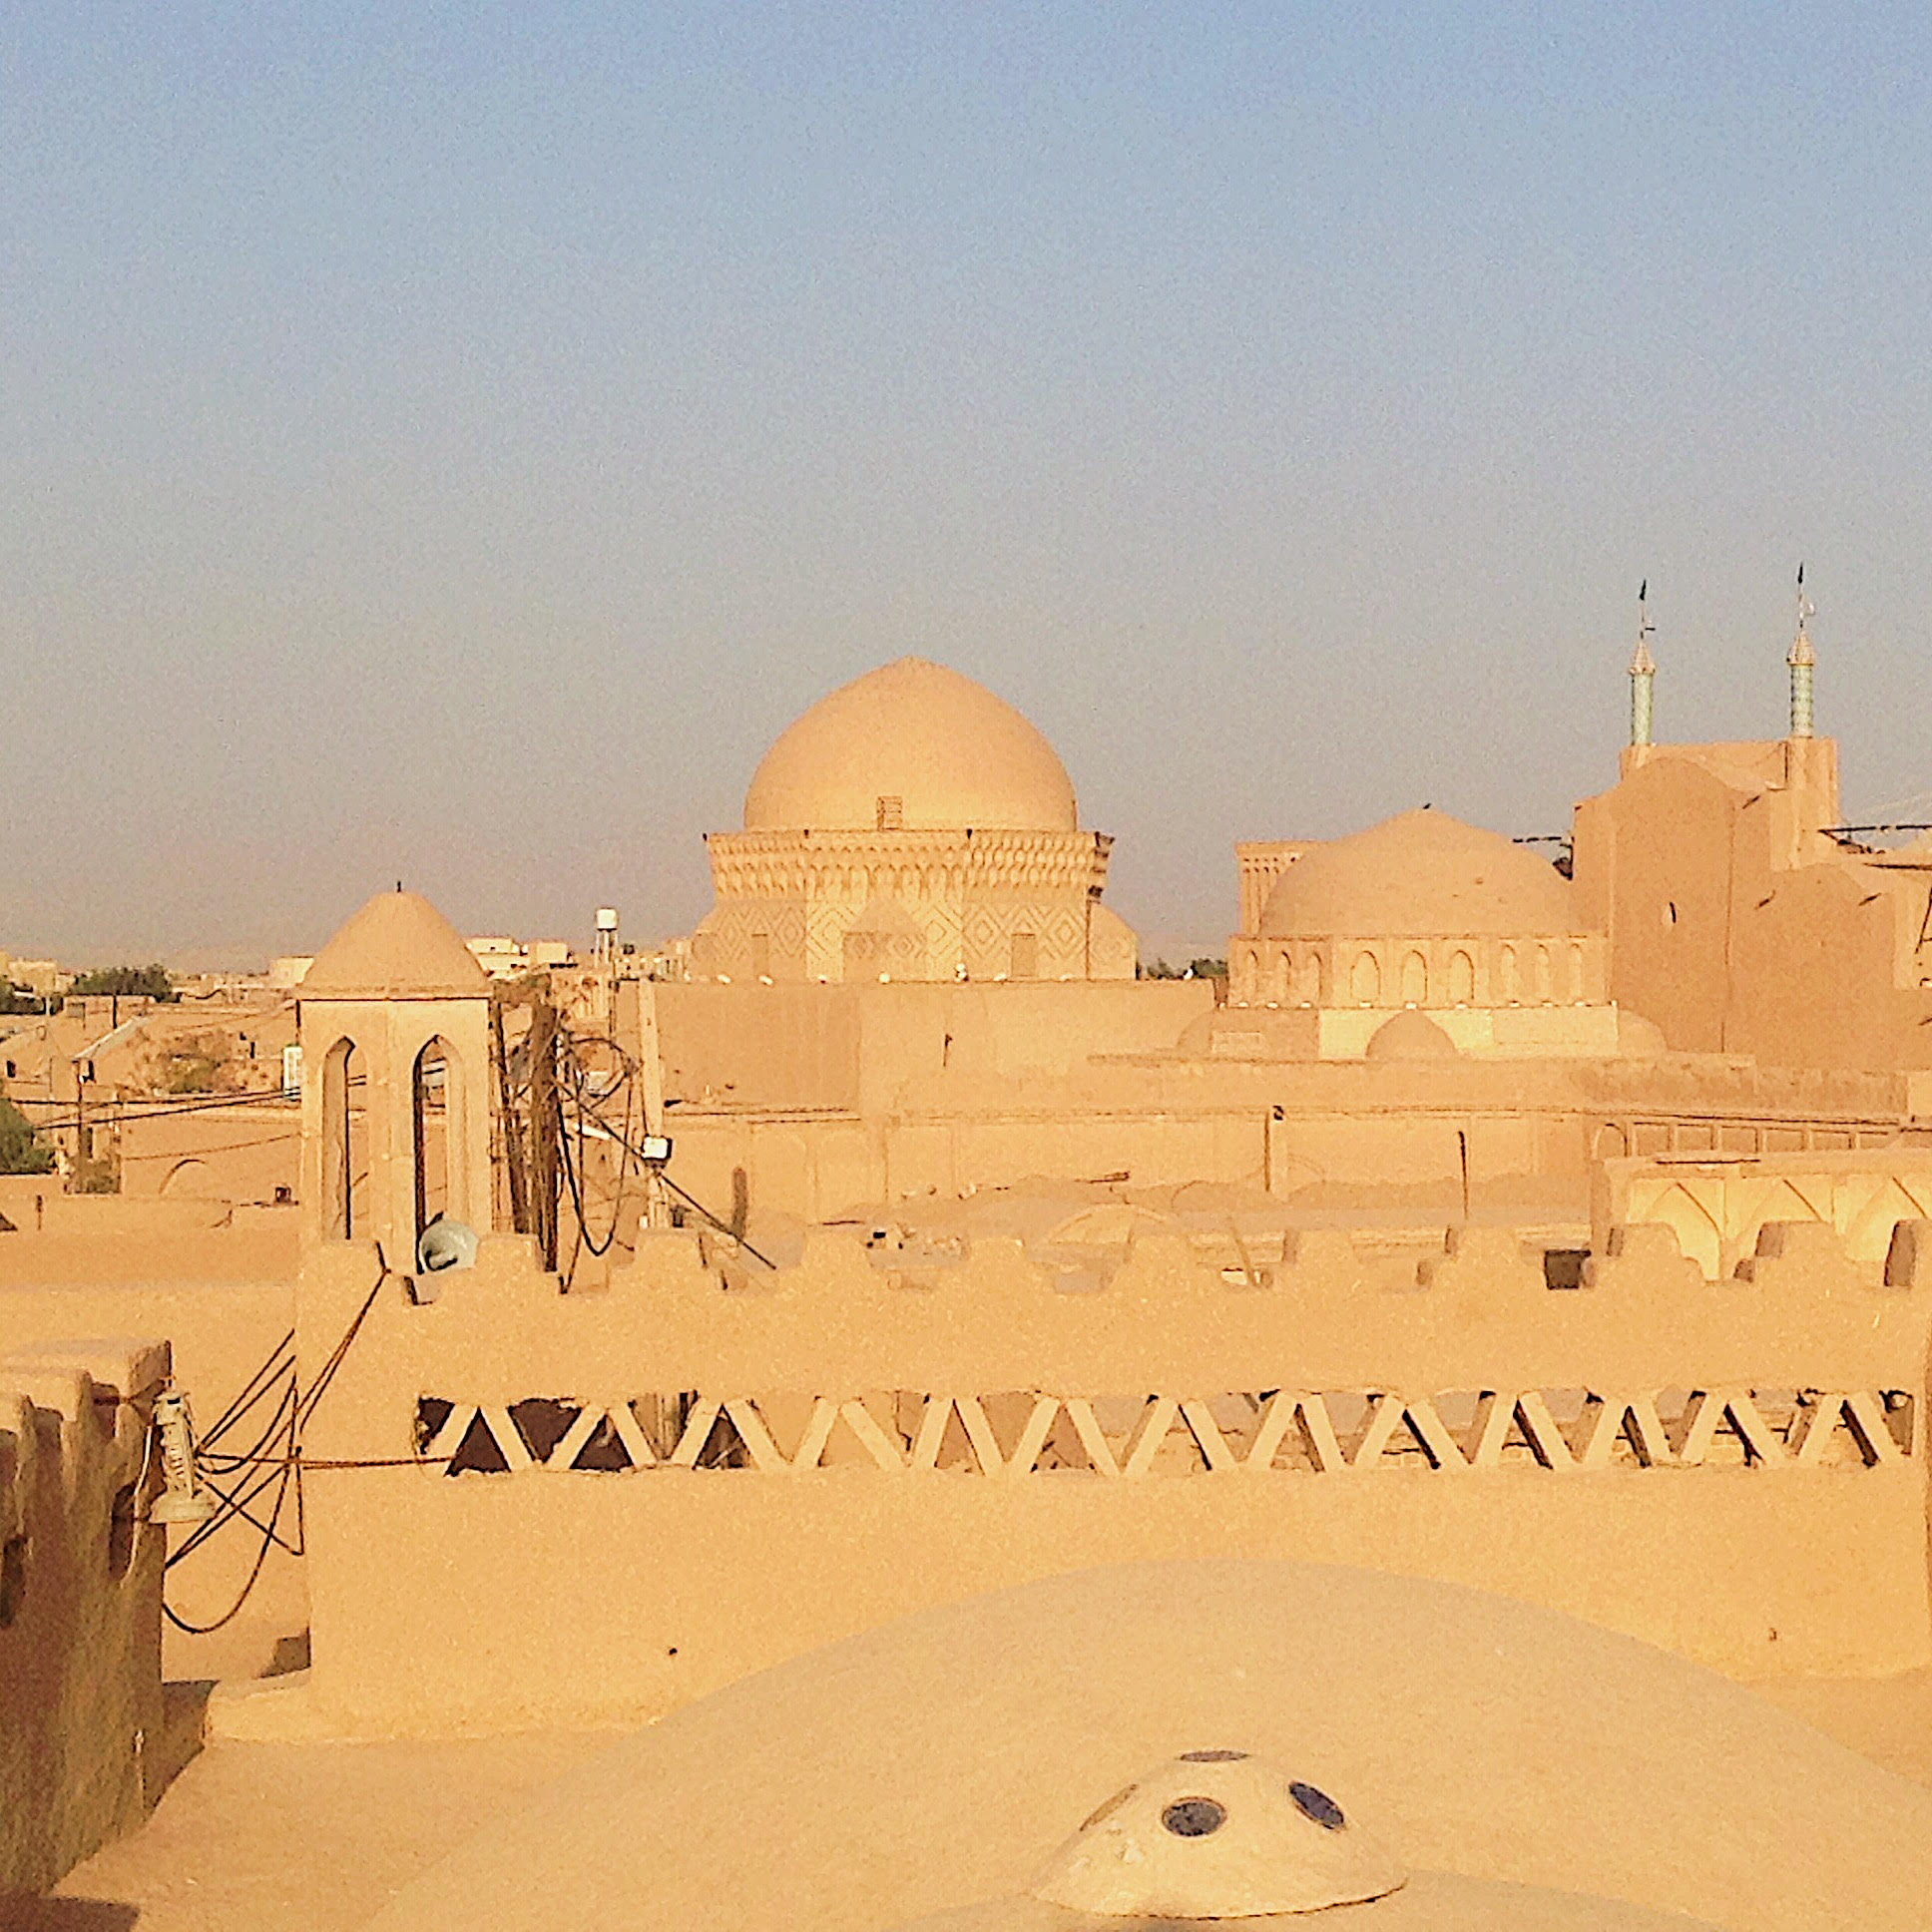 Over the roofs of Yazd